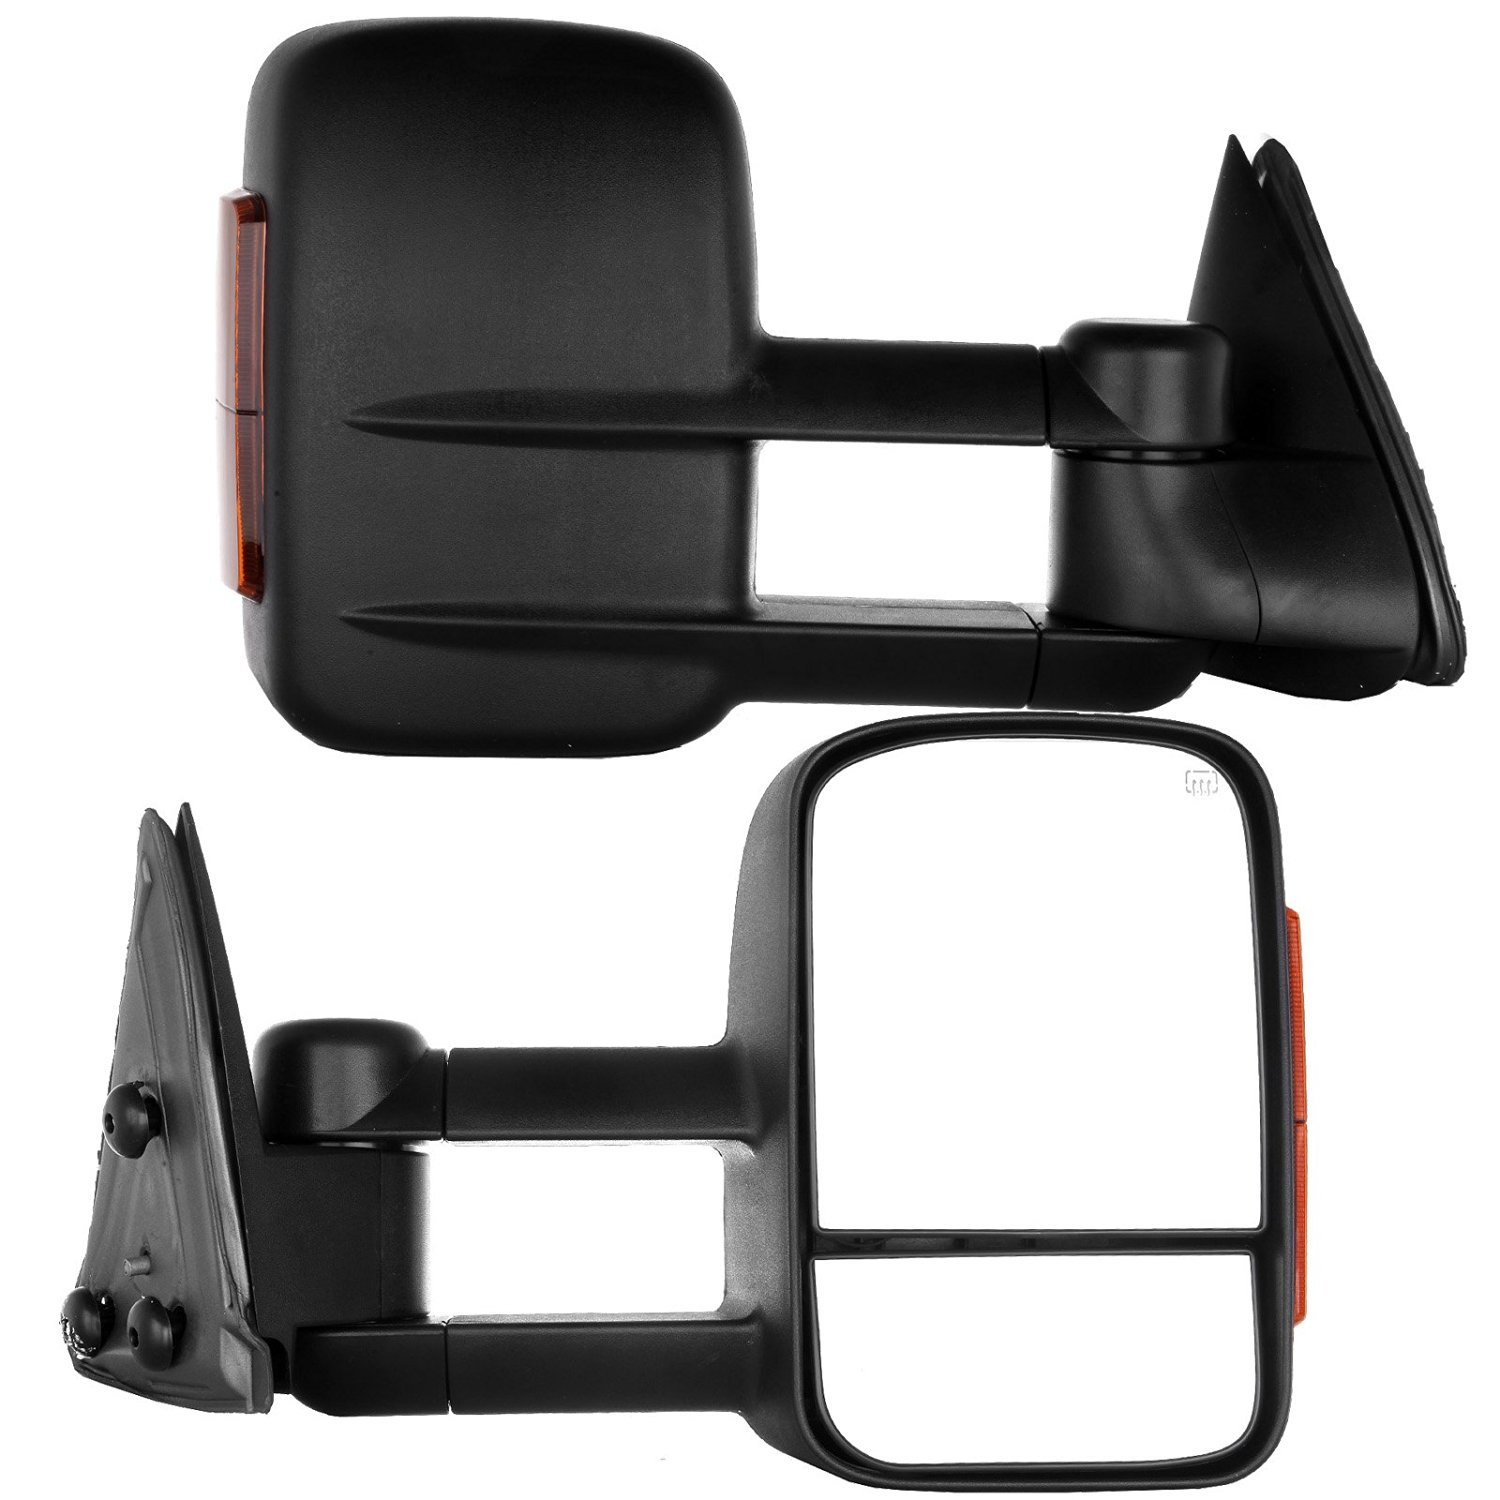 Towing Mirrors 2003-2007 Chevy/GMC Silverado/Sierra Power Heated Signal Side Mirror Pair (04 05 06 models 07 Classic)